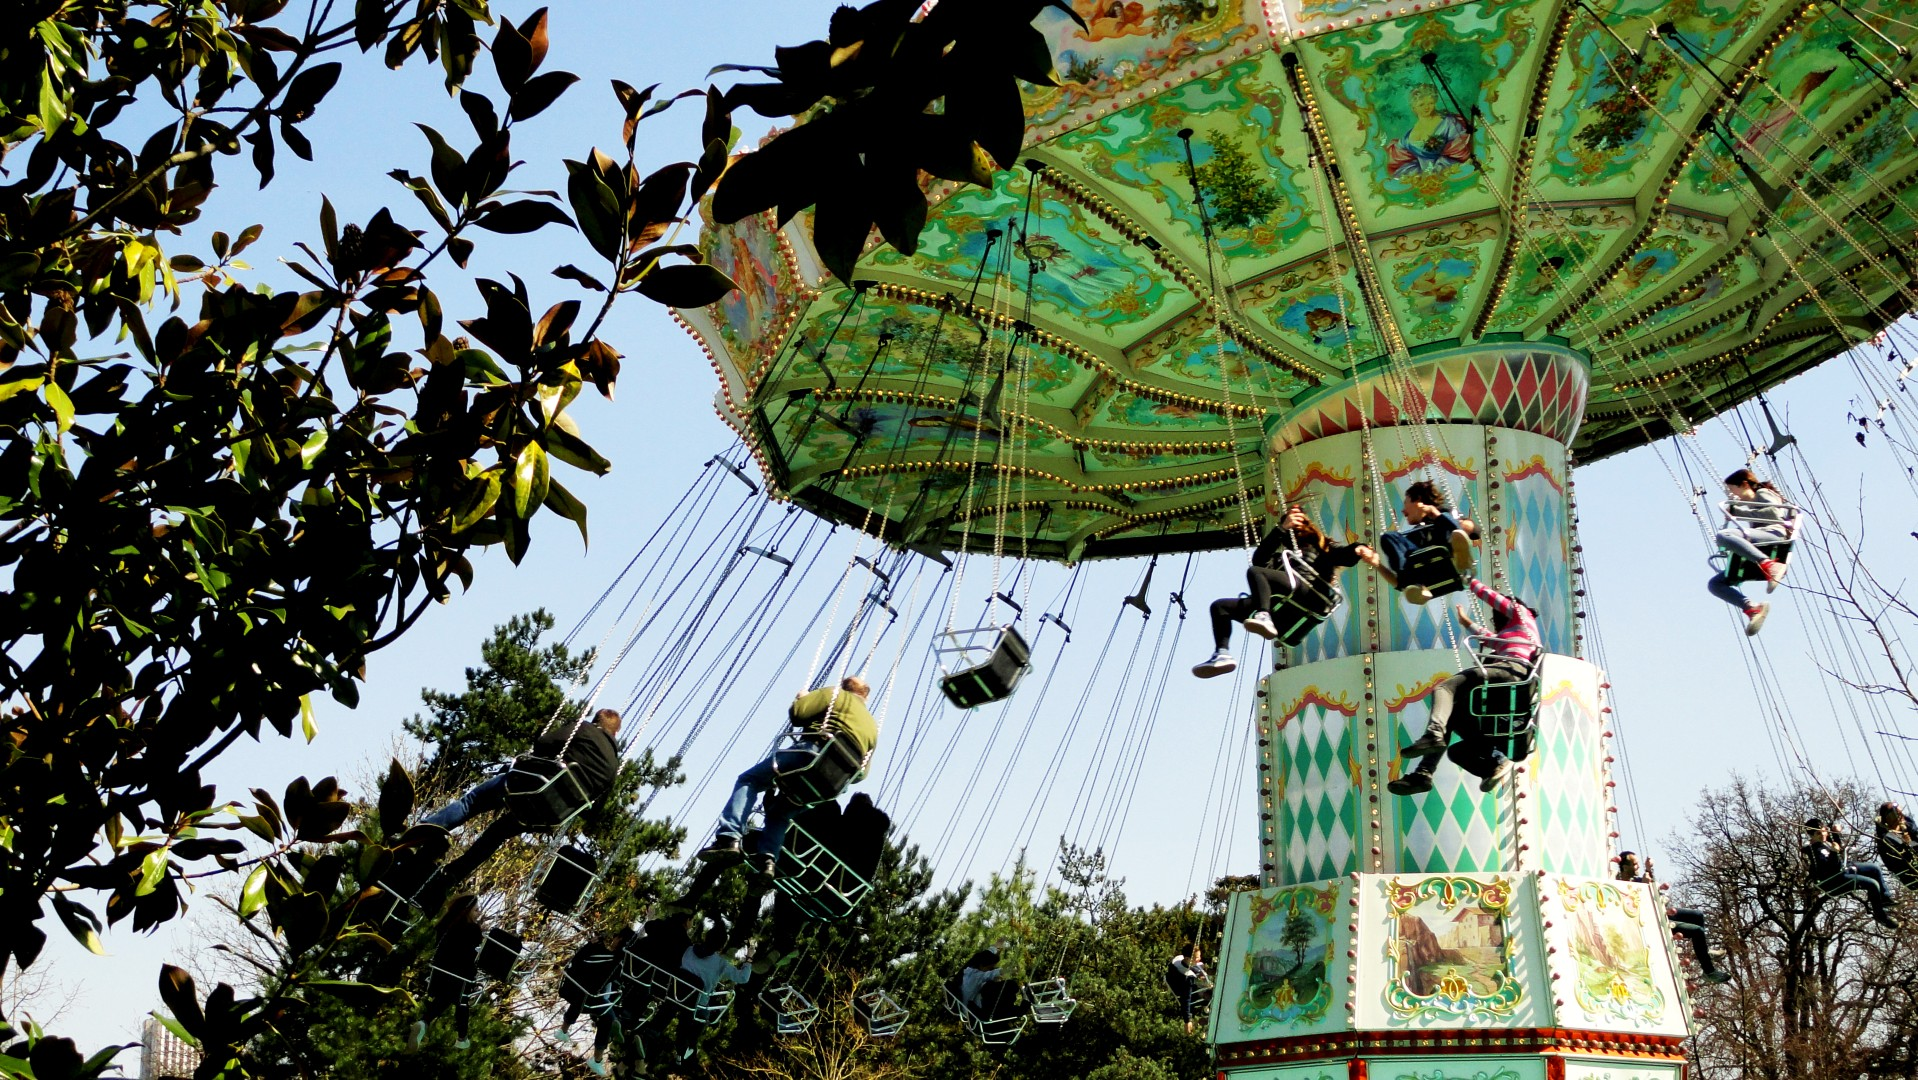 L'absence - Le Jardin d'acclimatation